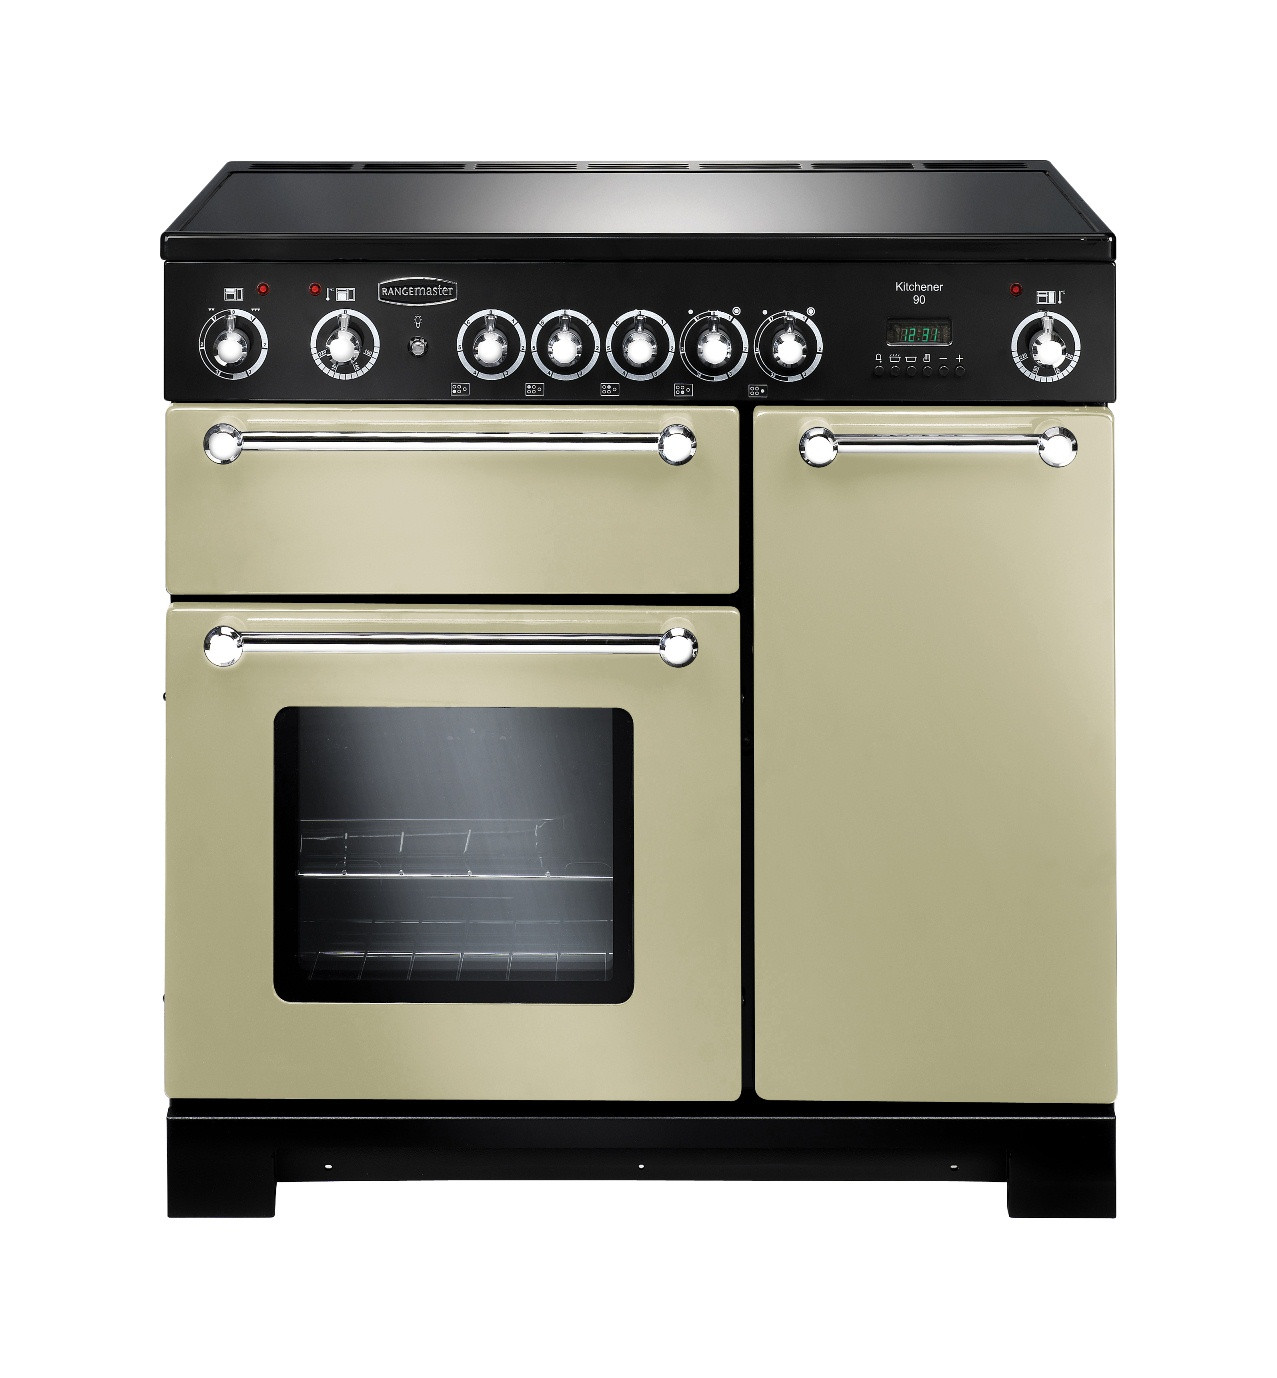 Rangemaster Kitchener 90 Ceramic Cream Range Cooker 79280